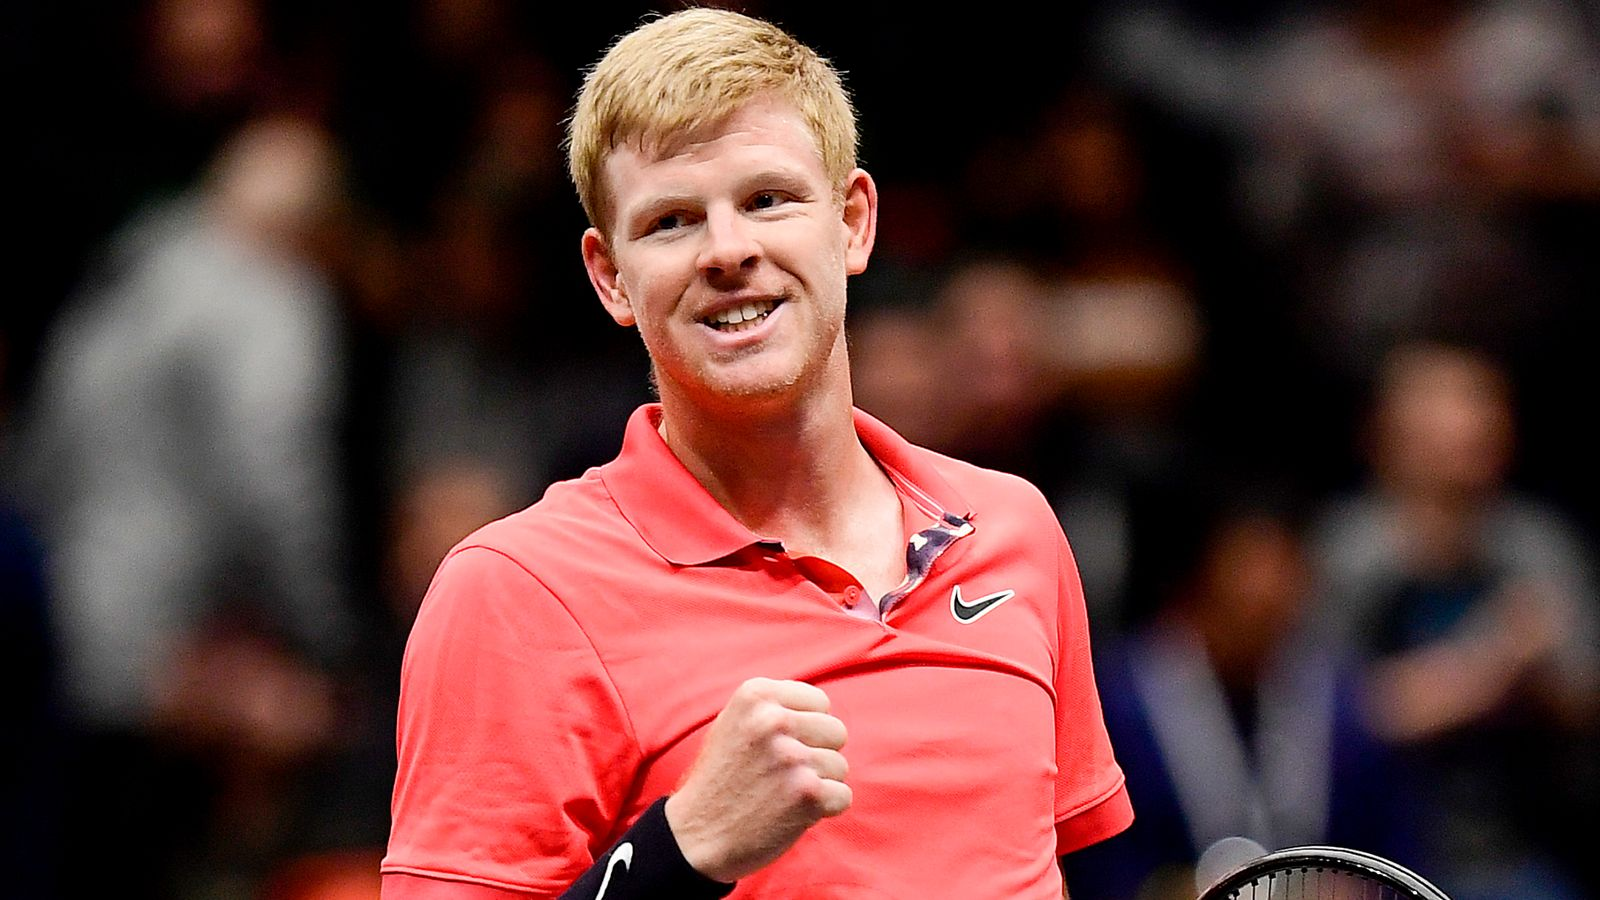 Kyle Edmund picks up his second ATP Tour crown after winning New York Open